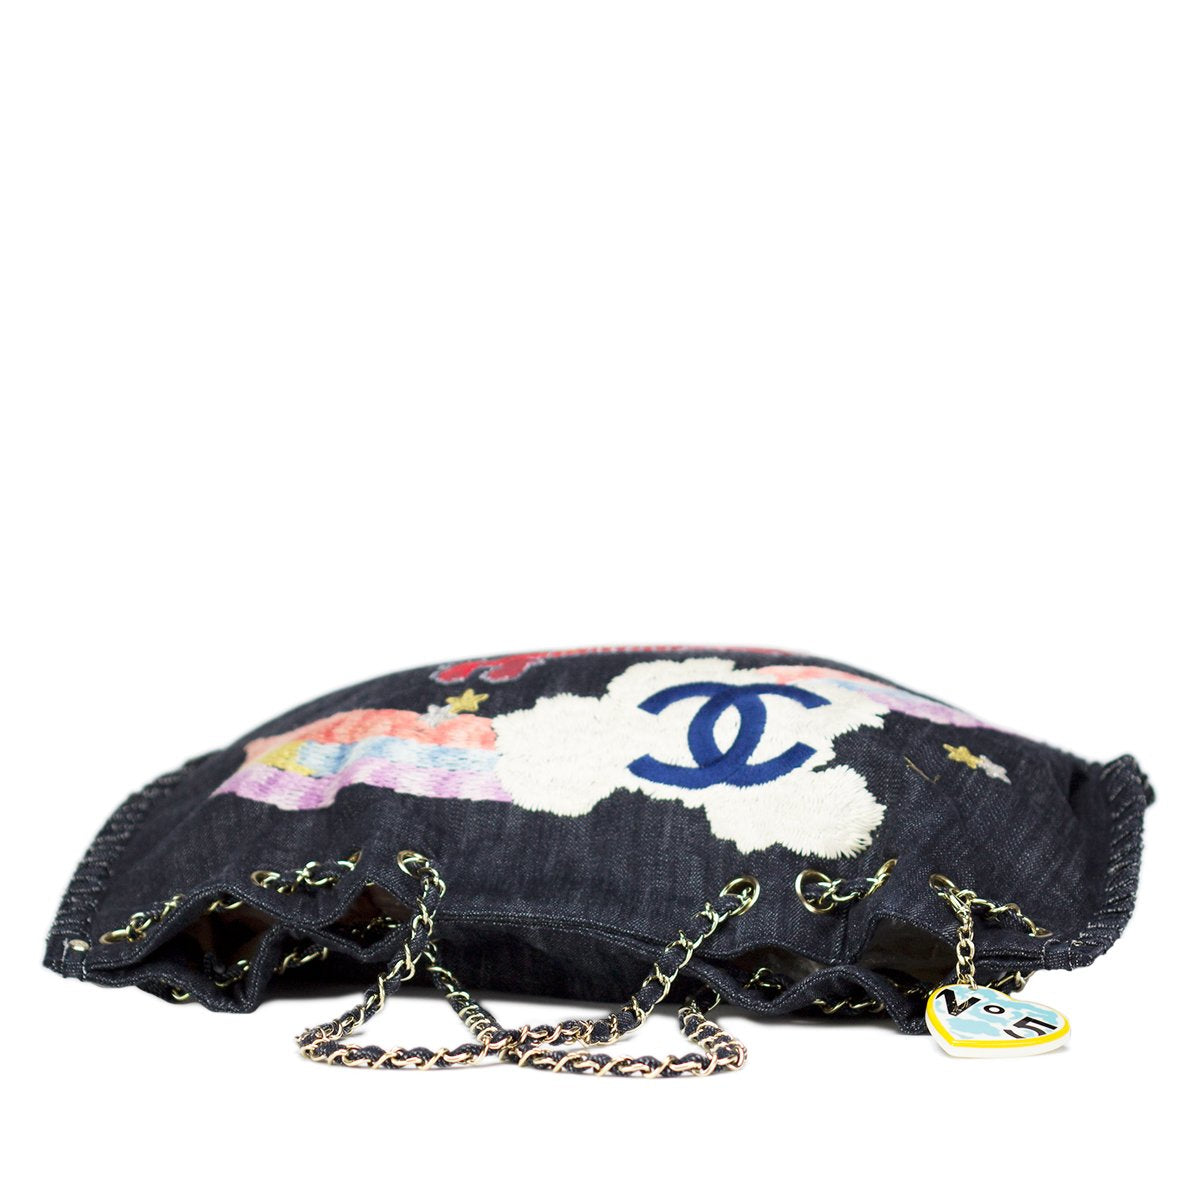 Chanel Rare Denim Airplane Mixed Media Tote